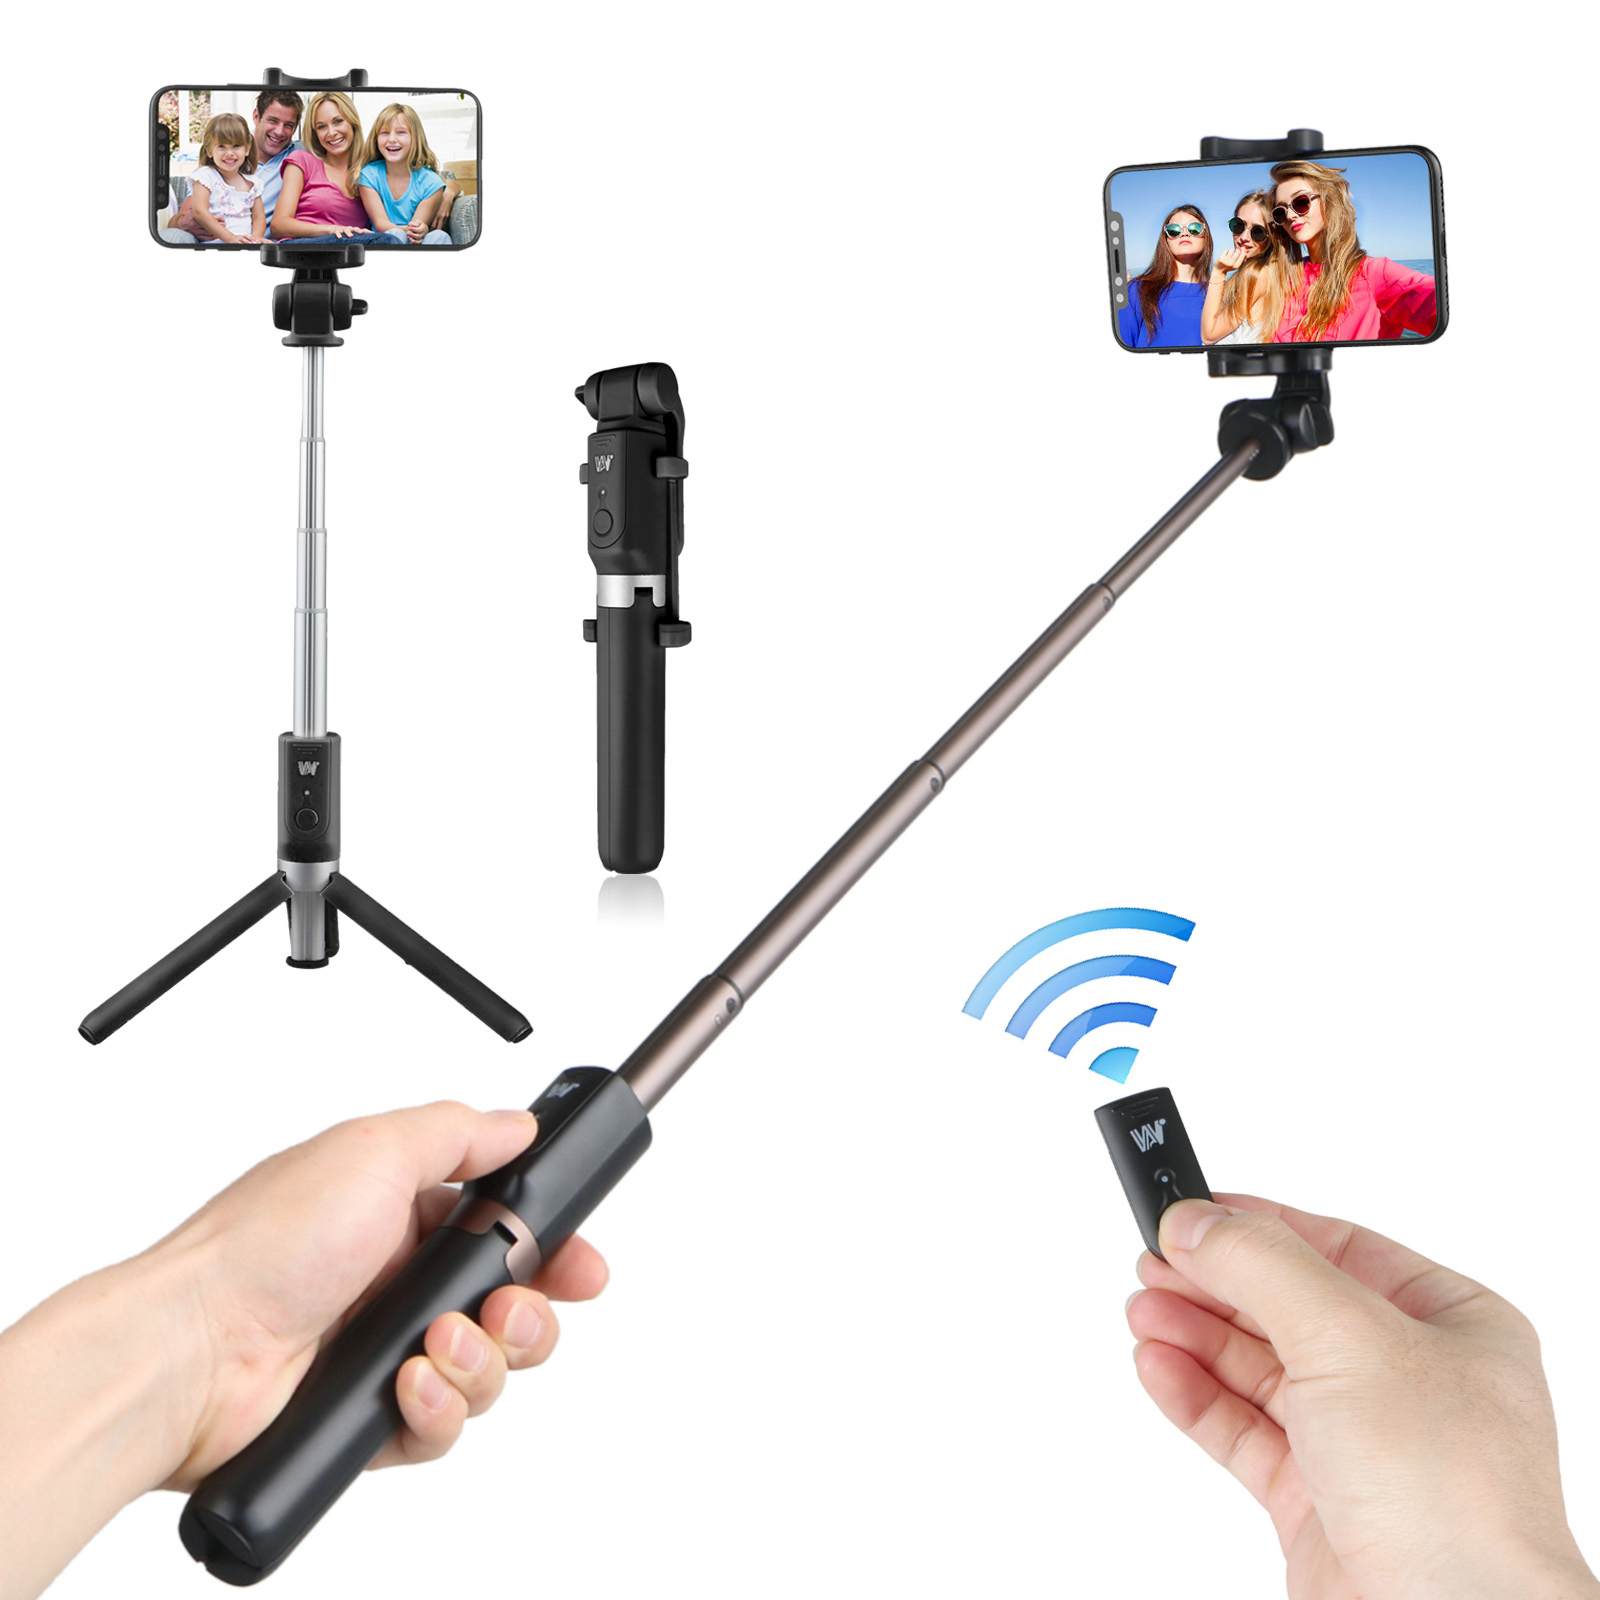 Portable Professional Camera Tripod, 360 Degree Camera Monopod Bluetooth Selfie Stick Tripod Adjustable Up to 28 inch with Remote Control for Cell Phone Digital Camera